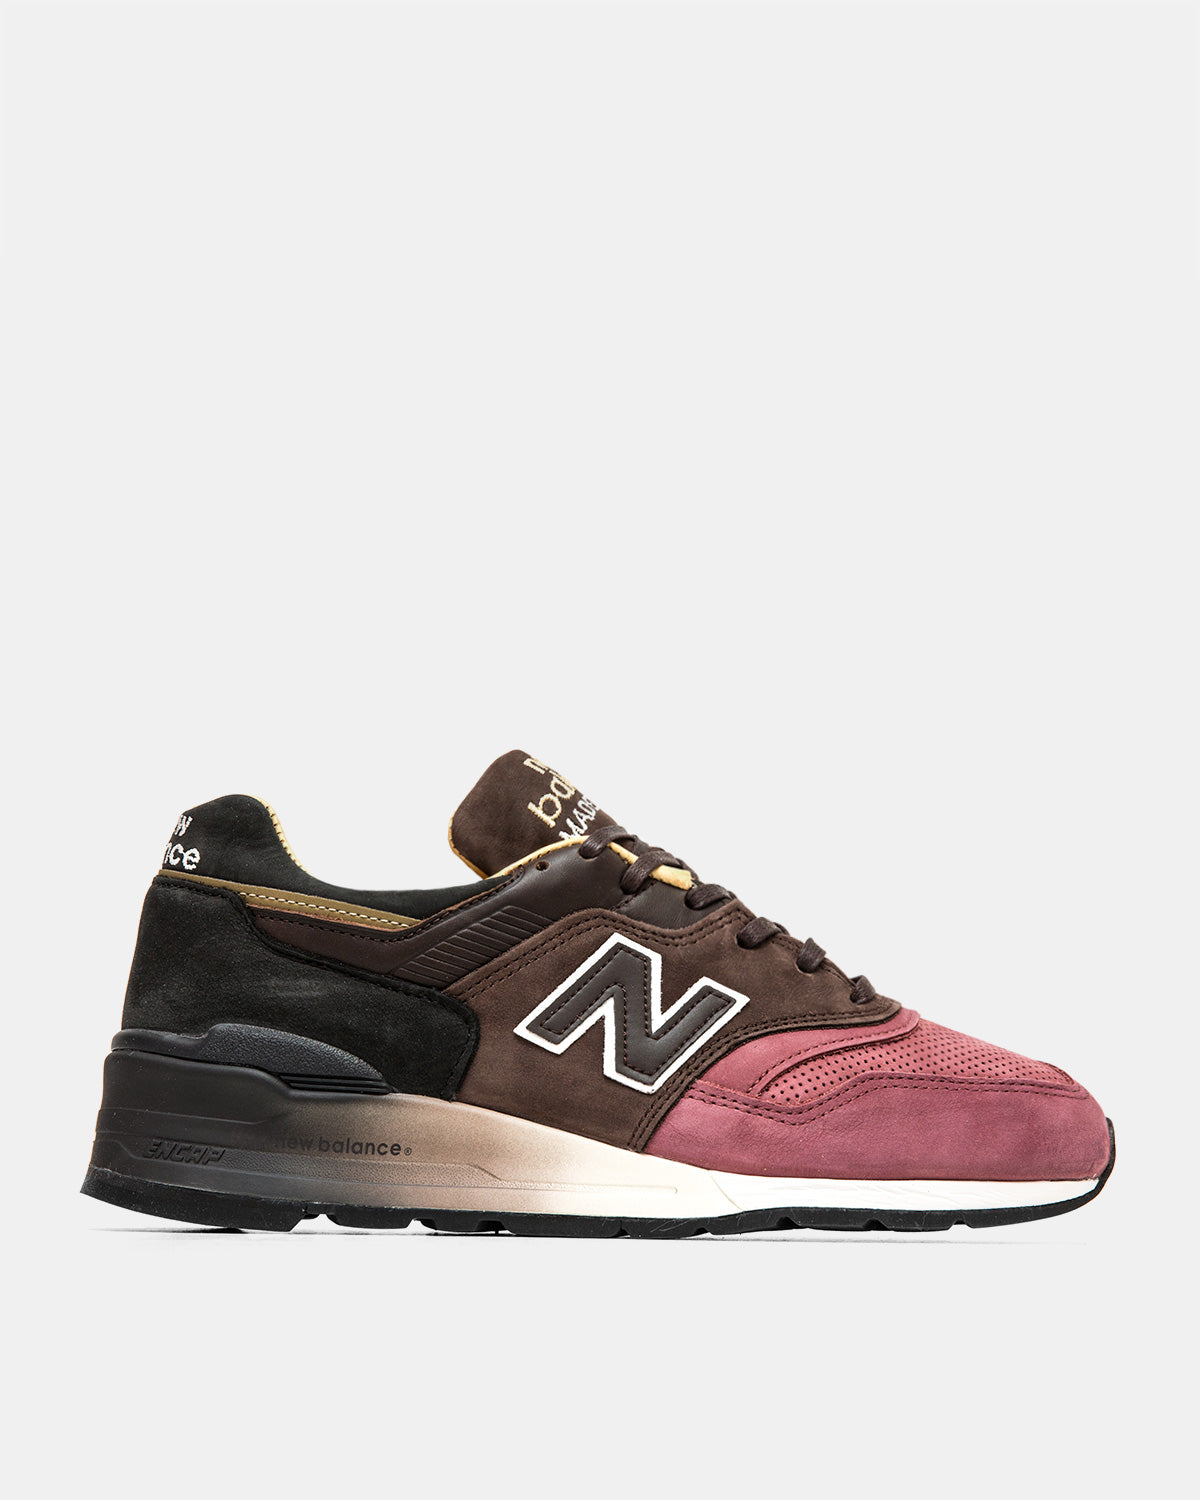 New Balance - 997 'Home Plate Pack' (Black | Brown | Burgundy)